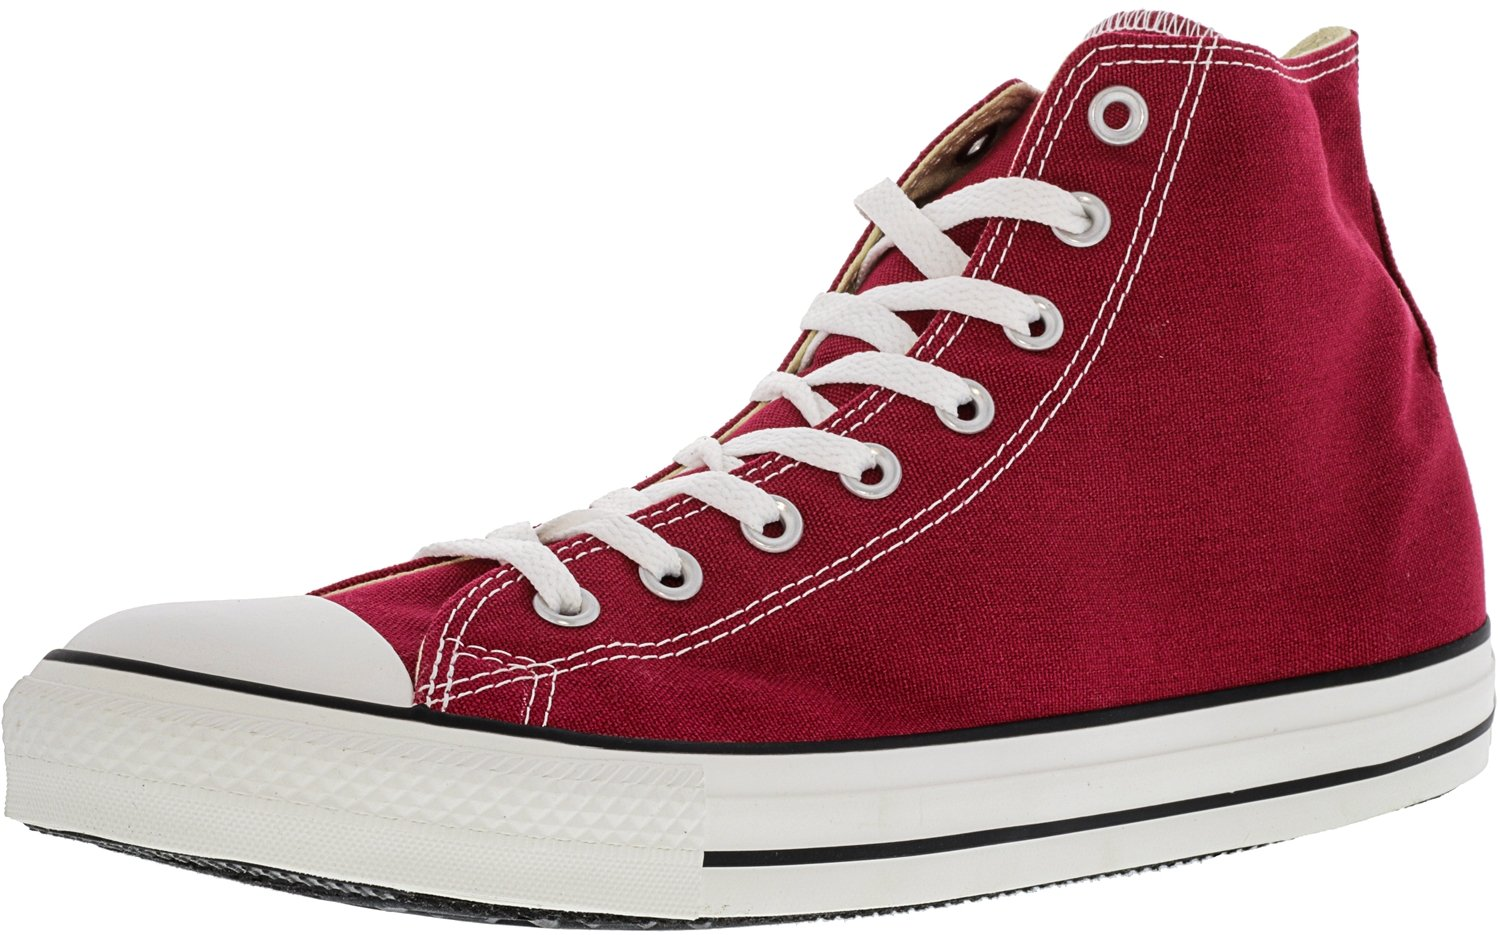 Converse Chuck Taylor All Star Leather High Top Sneaker B008KR0HG2 15 B(M) US Women / 13 D(M) US Men|Jester Red